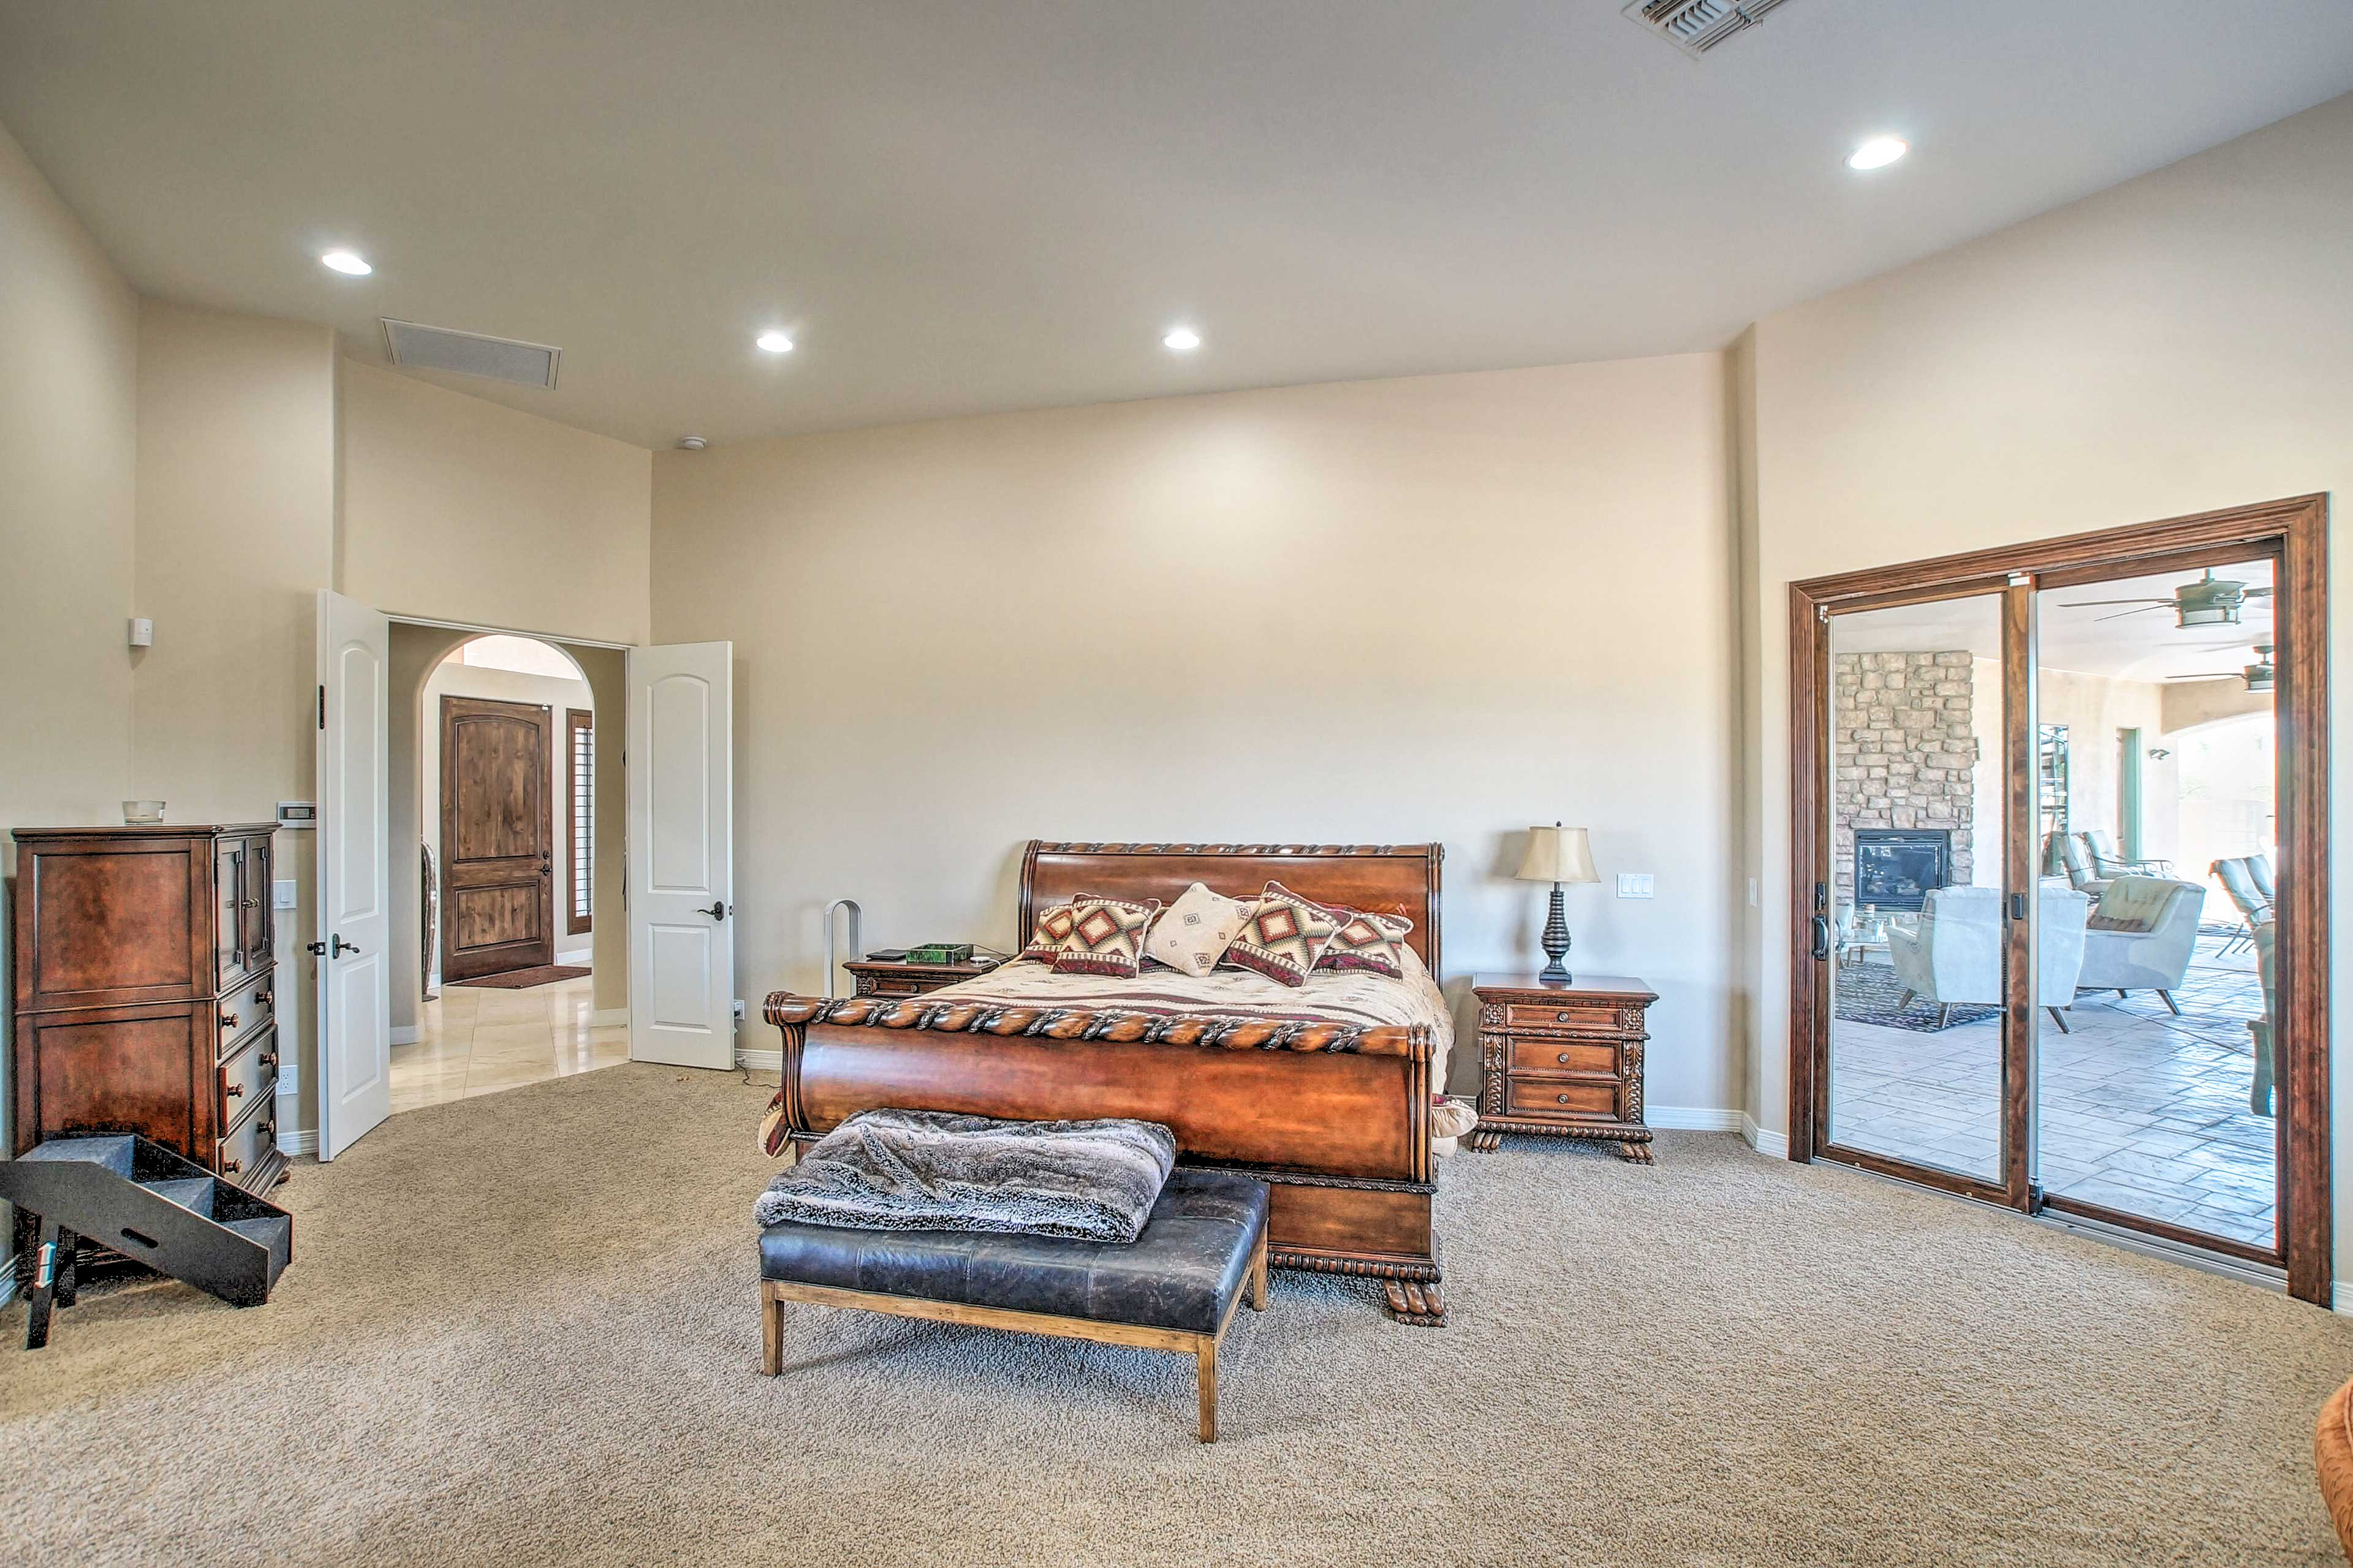 The master bedroom boasts a king bed, patio access, and an en-suite bathroom.